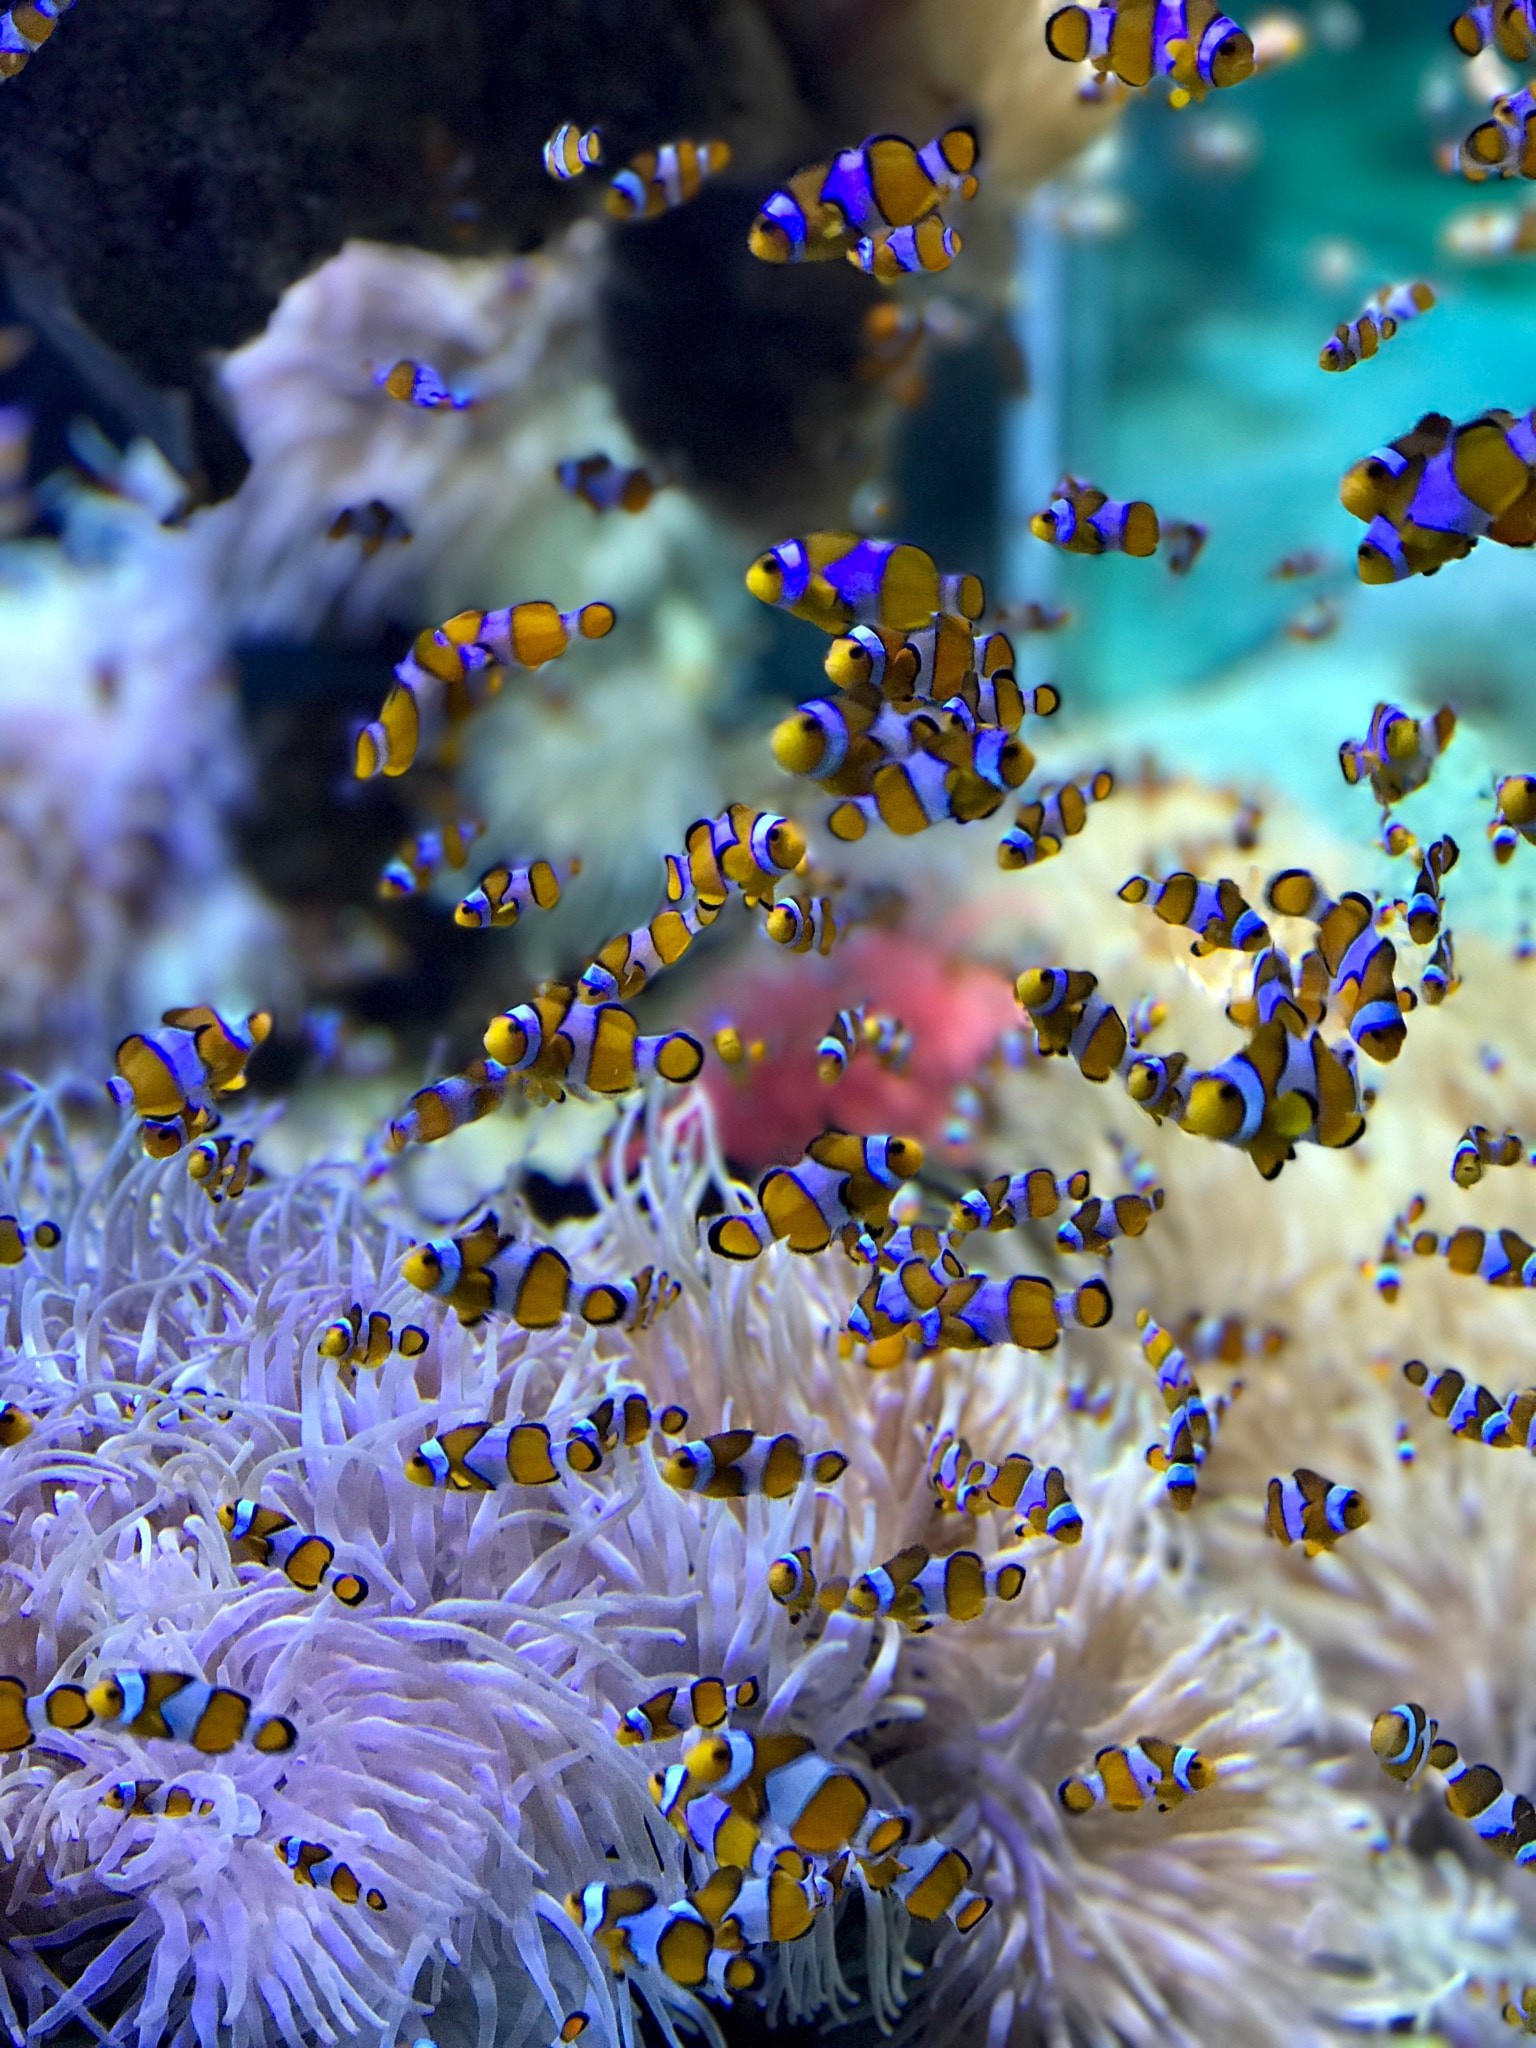 A school of clown fish with their symbiote, the sea anenome.